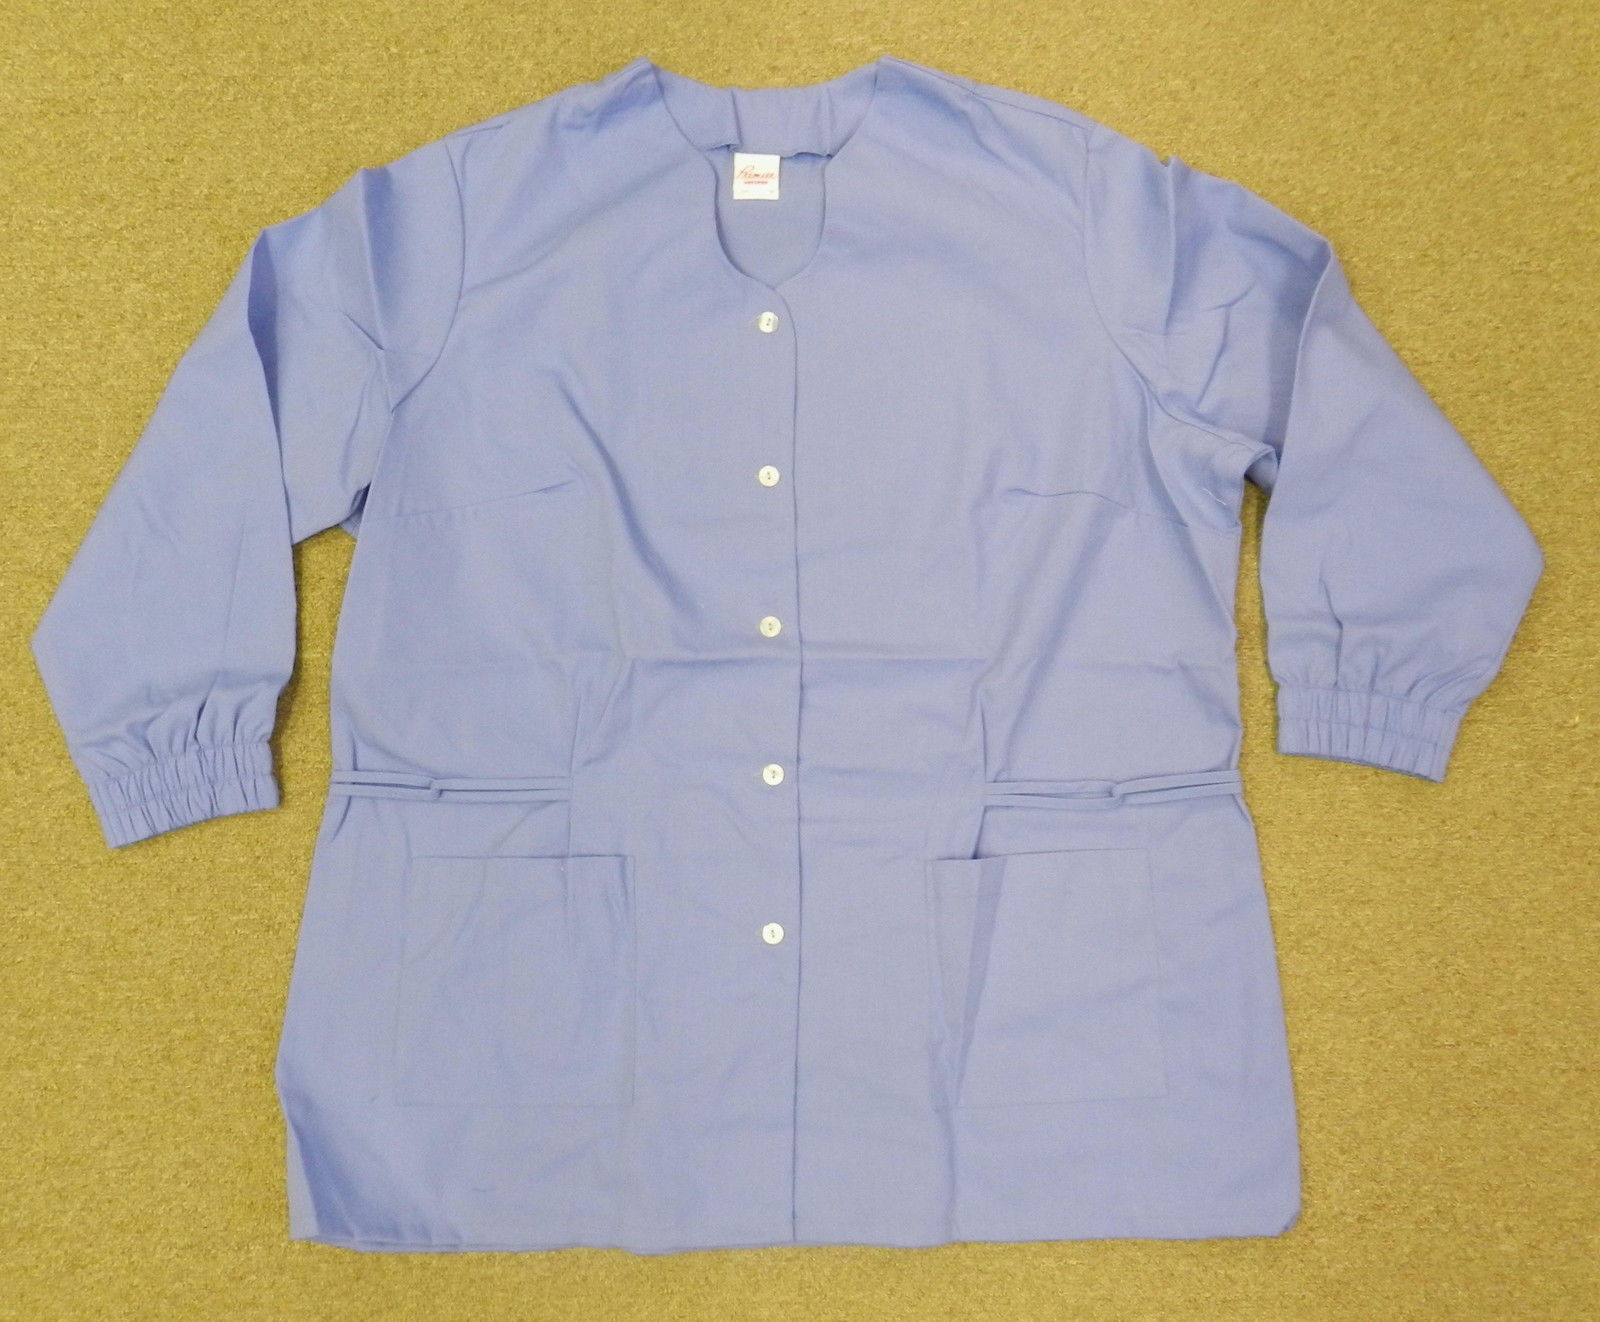 Primary image for Premier Uniforms #9399 V Neck Ceil Blue 4XL Medical Dental Scrub Top Jacket New